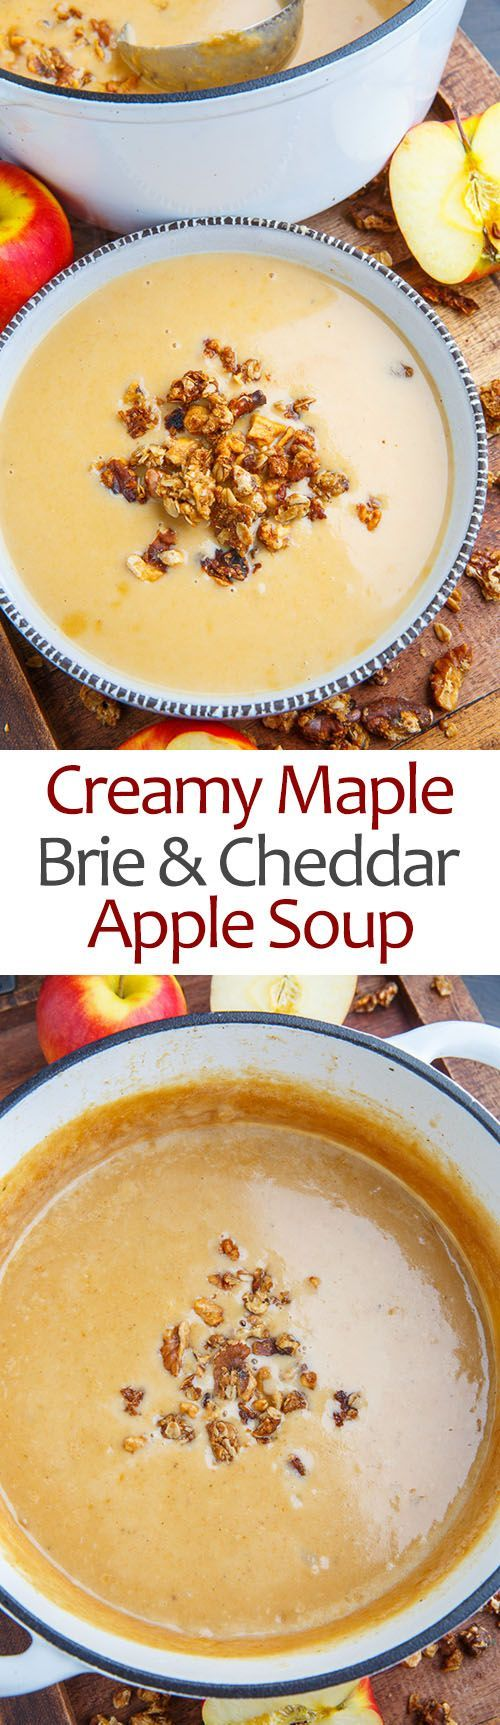 Creamy Maple Brie and Cheddar Apple Soup with Walnut-Oat Granola